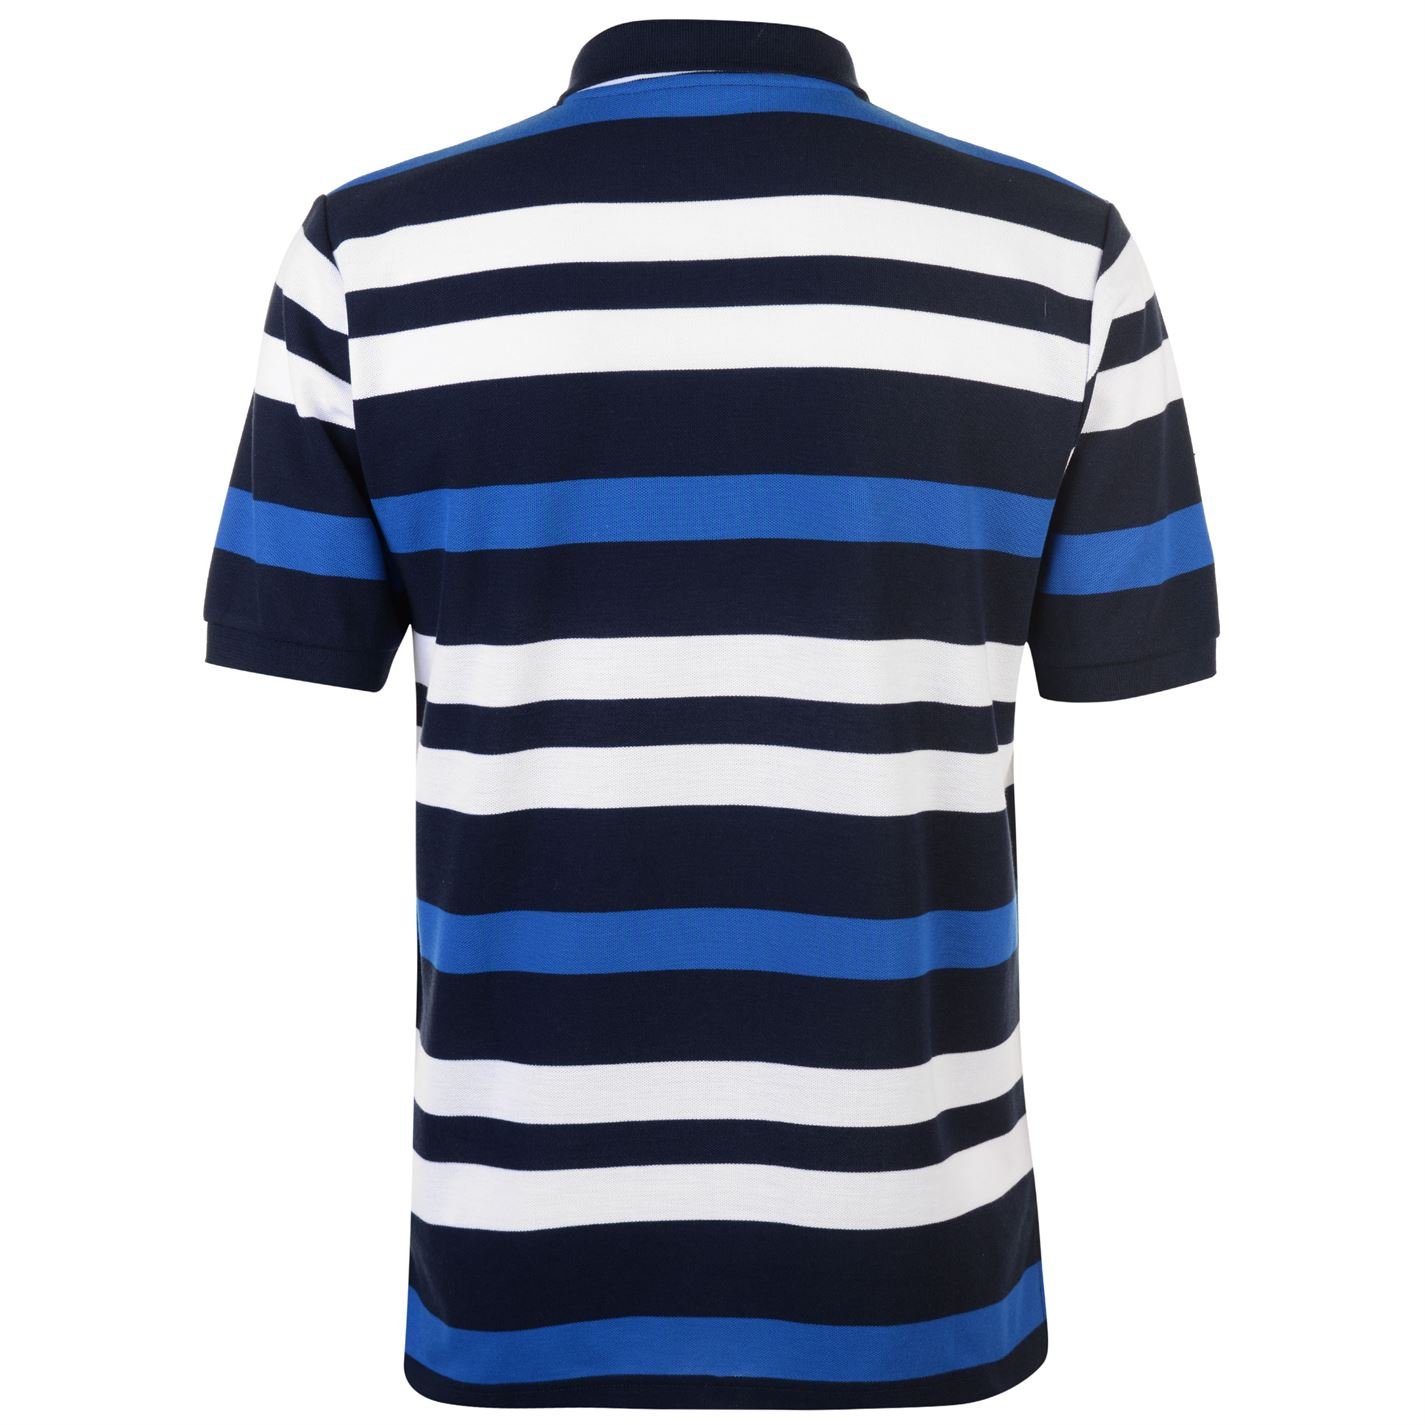 Lonsdale-Mens-Stripe-Polo-Shirt-Classic-Fit-Tee-Top-Short-Sleeve-Button-Placket thumbnail 20